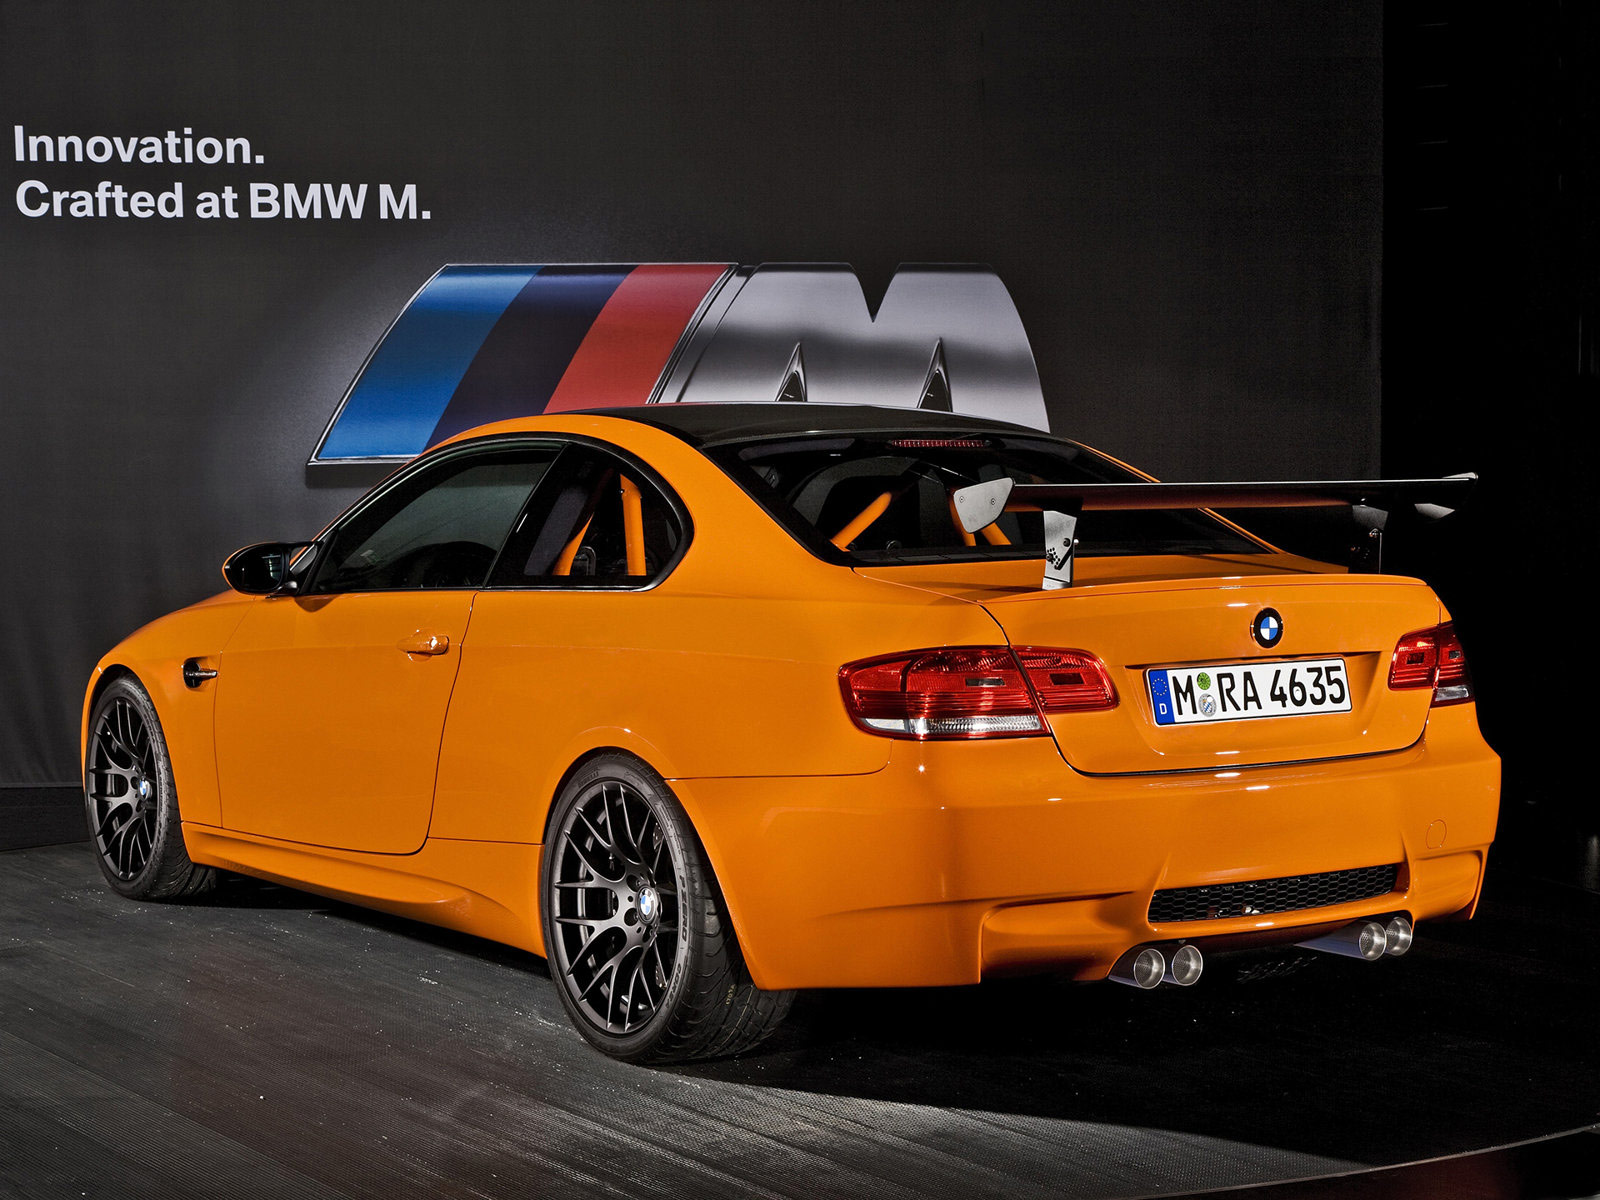 http://2.bp.blogspot.com/-vw0gstNYpUs/Th-w9YpEpQI/AAAAAAAAAPQ/U9ezH4HNSXI/s1600/BMW-desktop-wallpapers_M3_GTS_2011_2.jpg